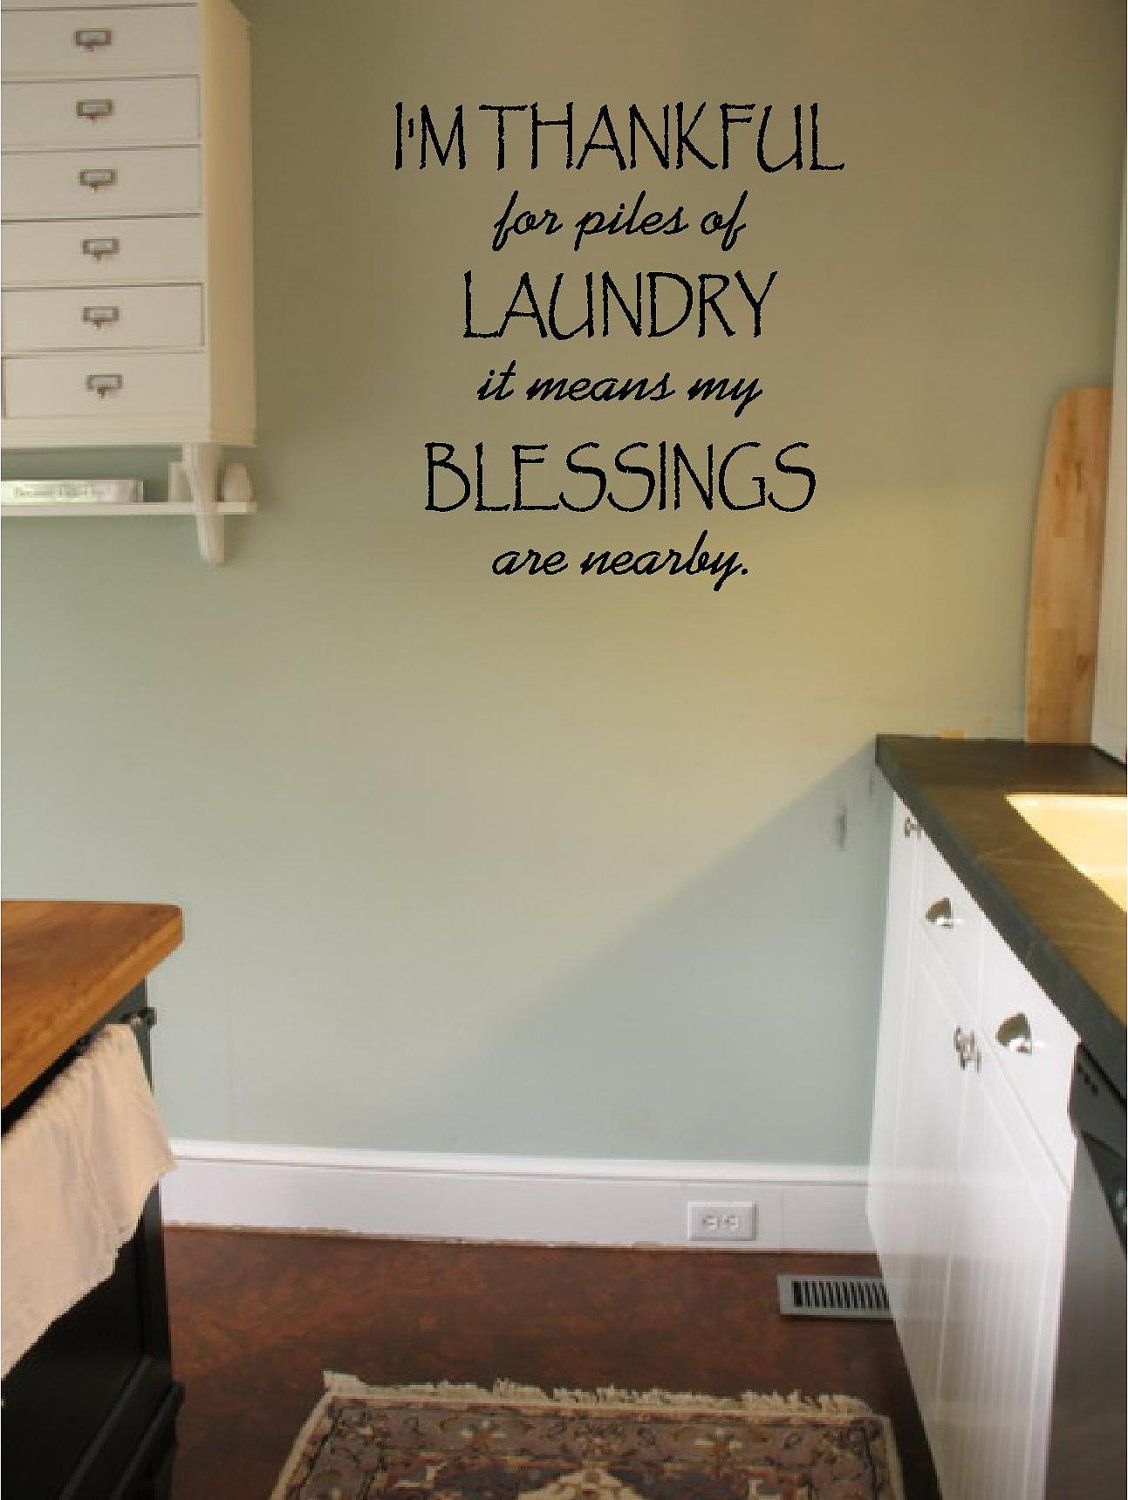 Laundry Wall Decals I'm Thankful For Piles Of Laundrylaundry Wall Decal Sticker